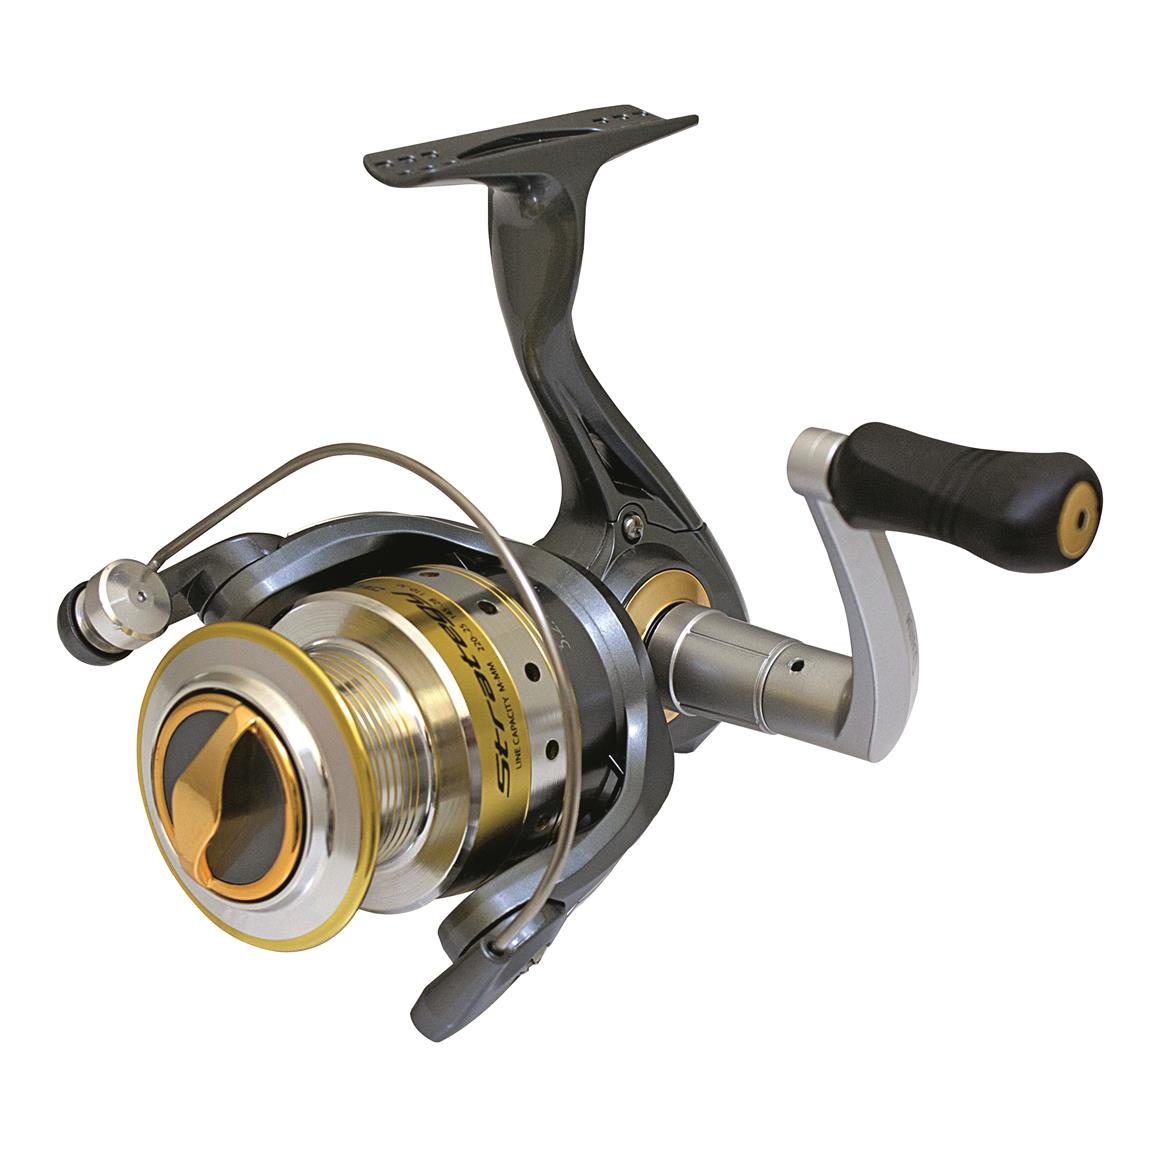 Strategy series spinning reel